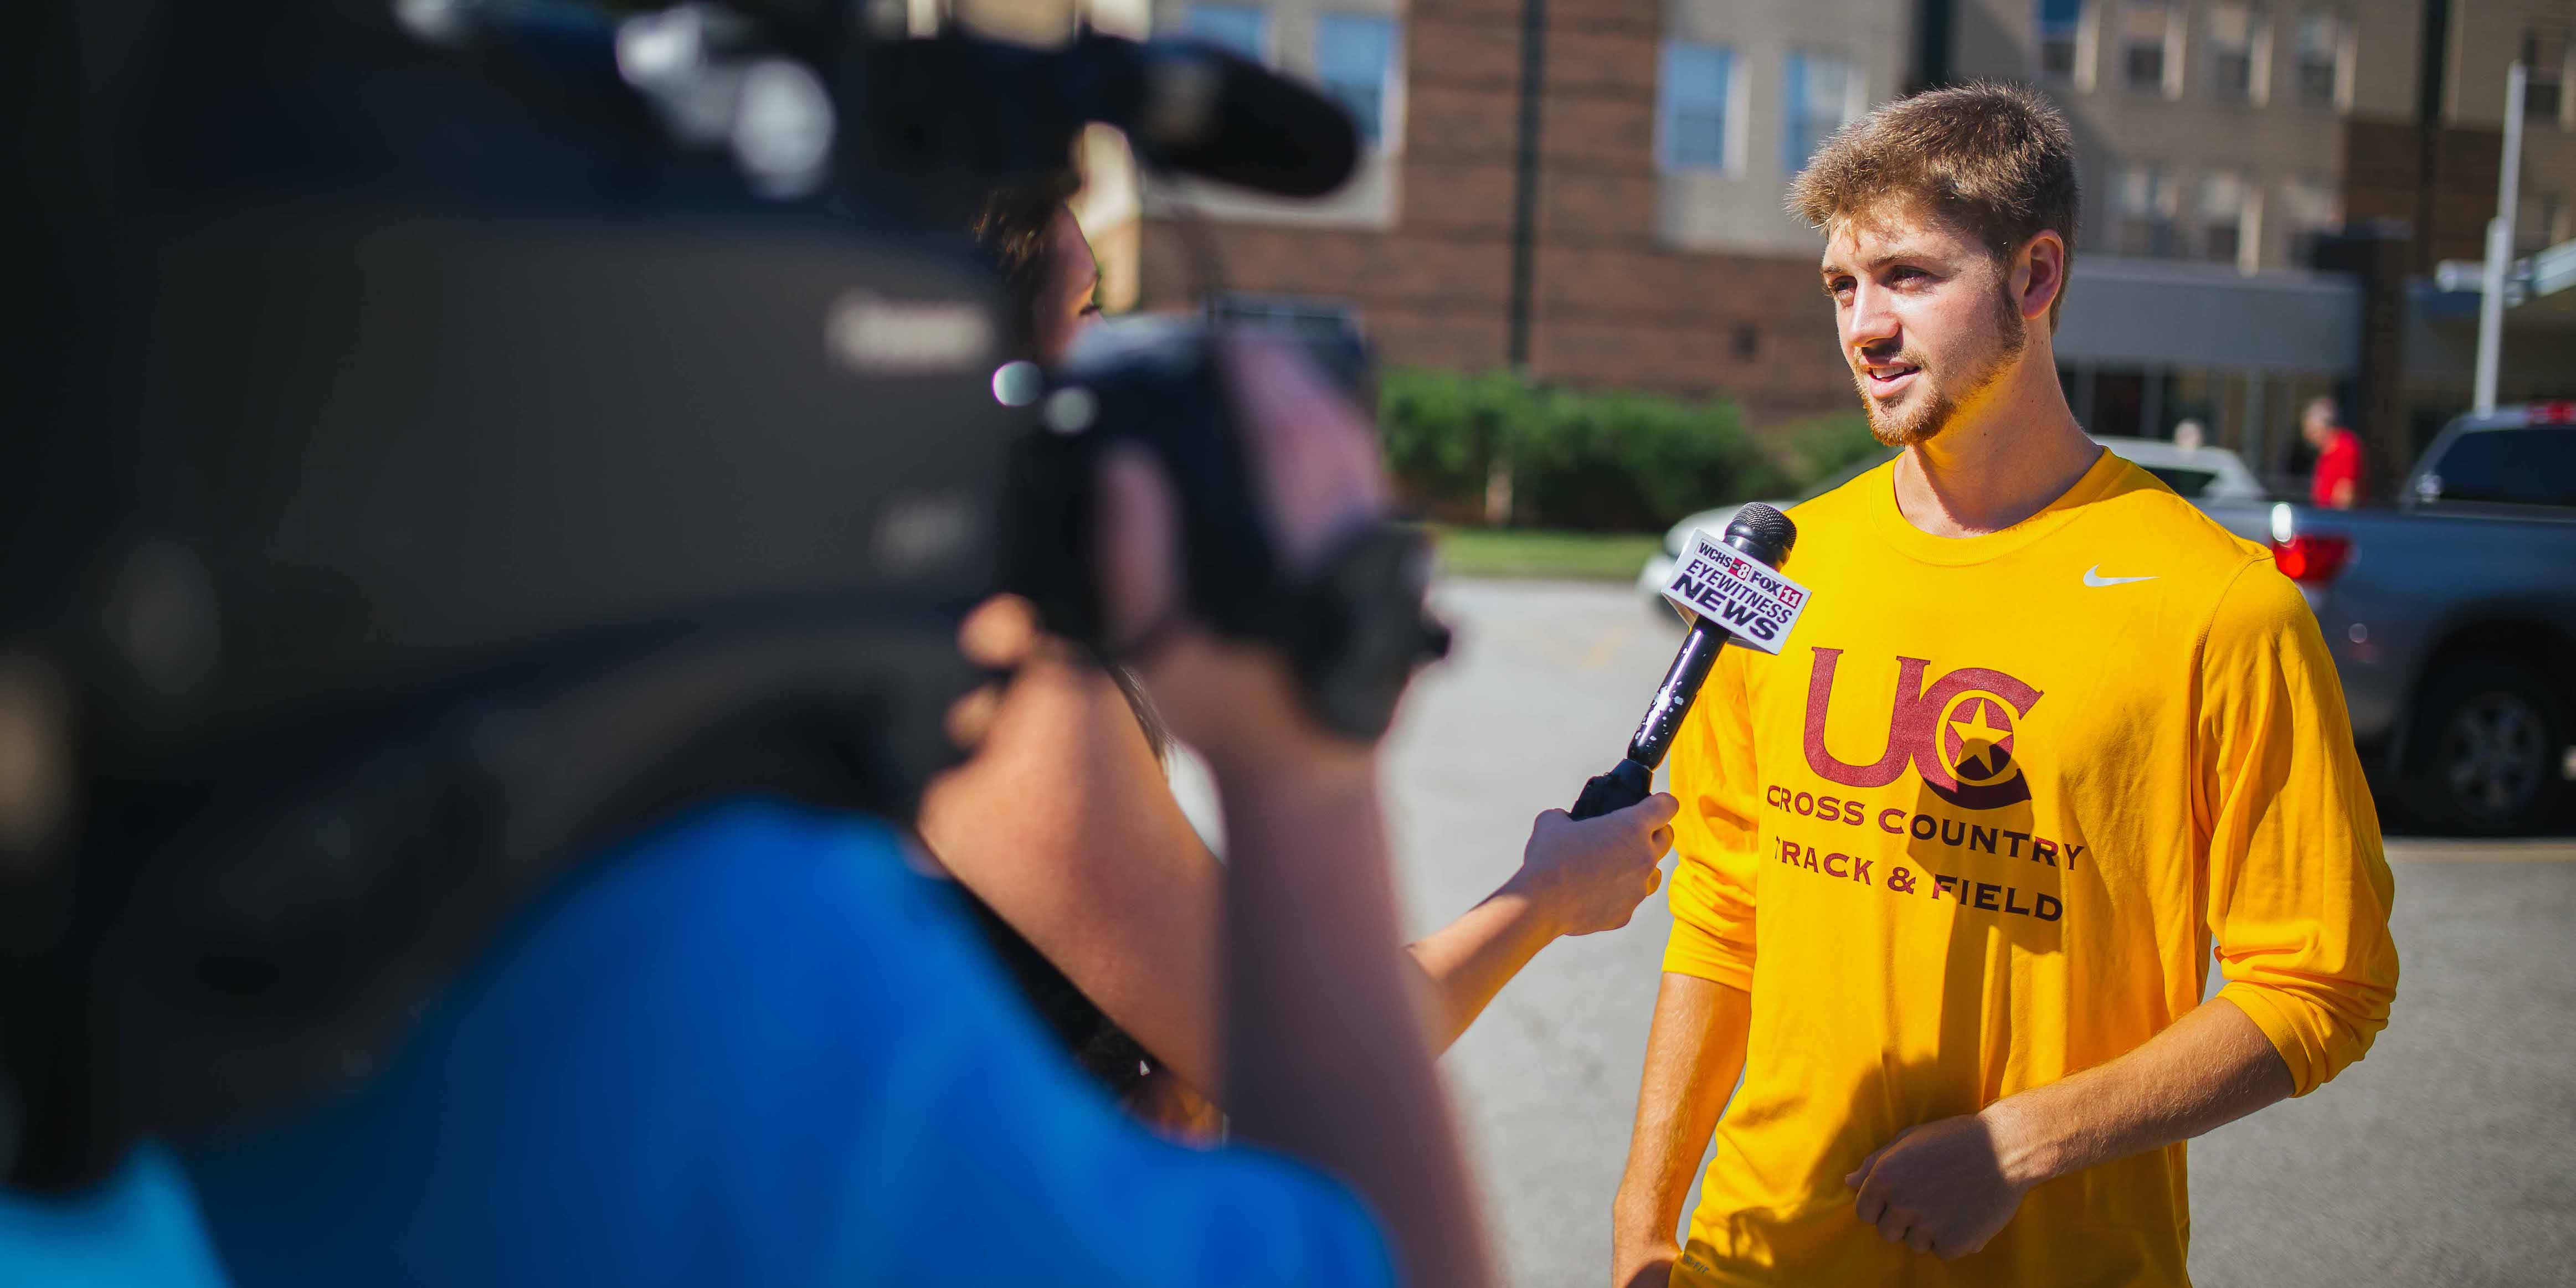 male student athlete being interviewed by local news anchor